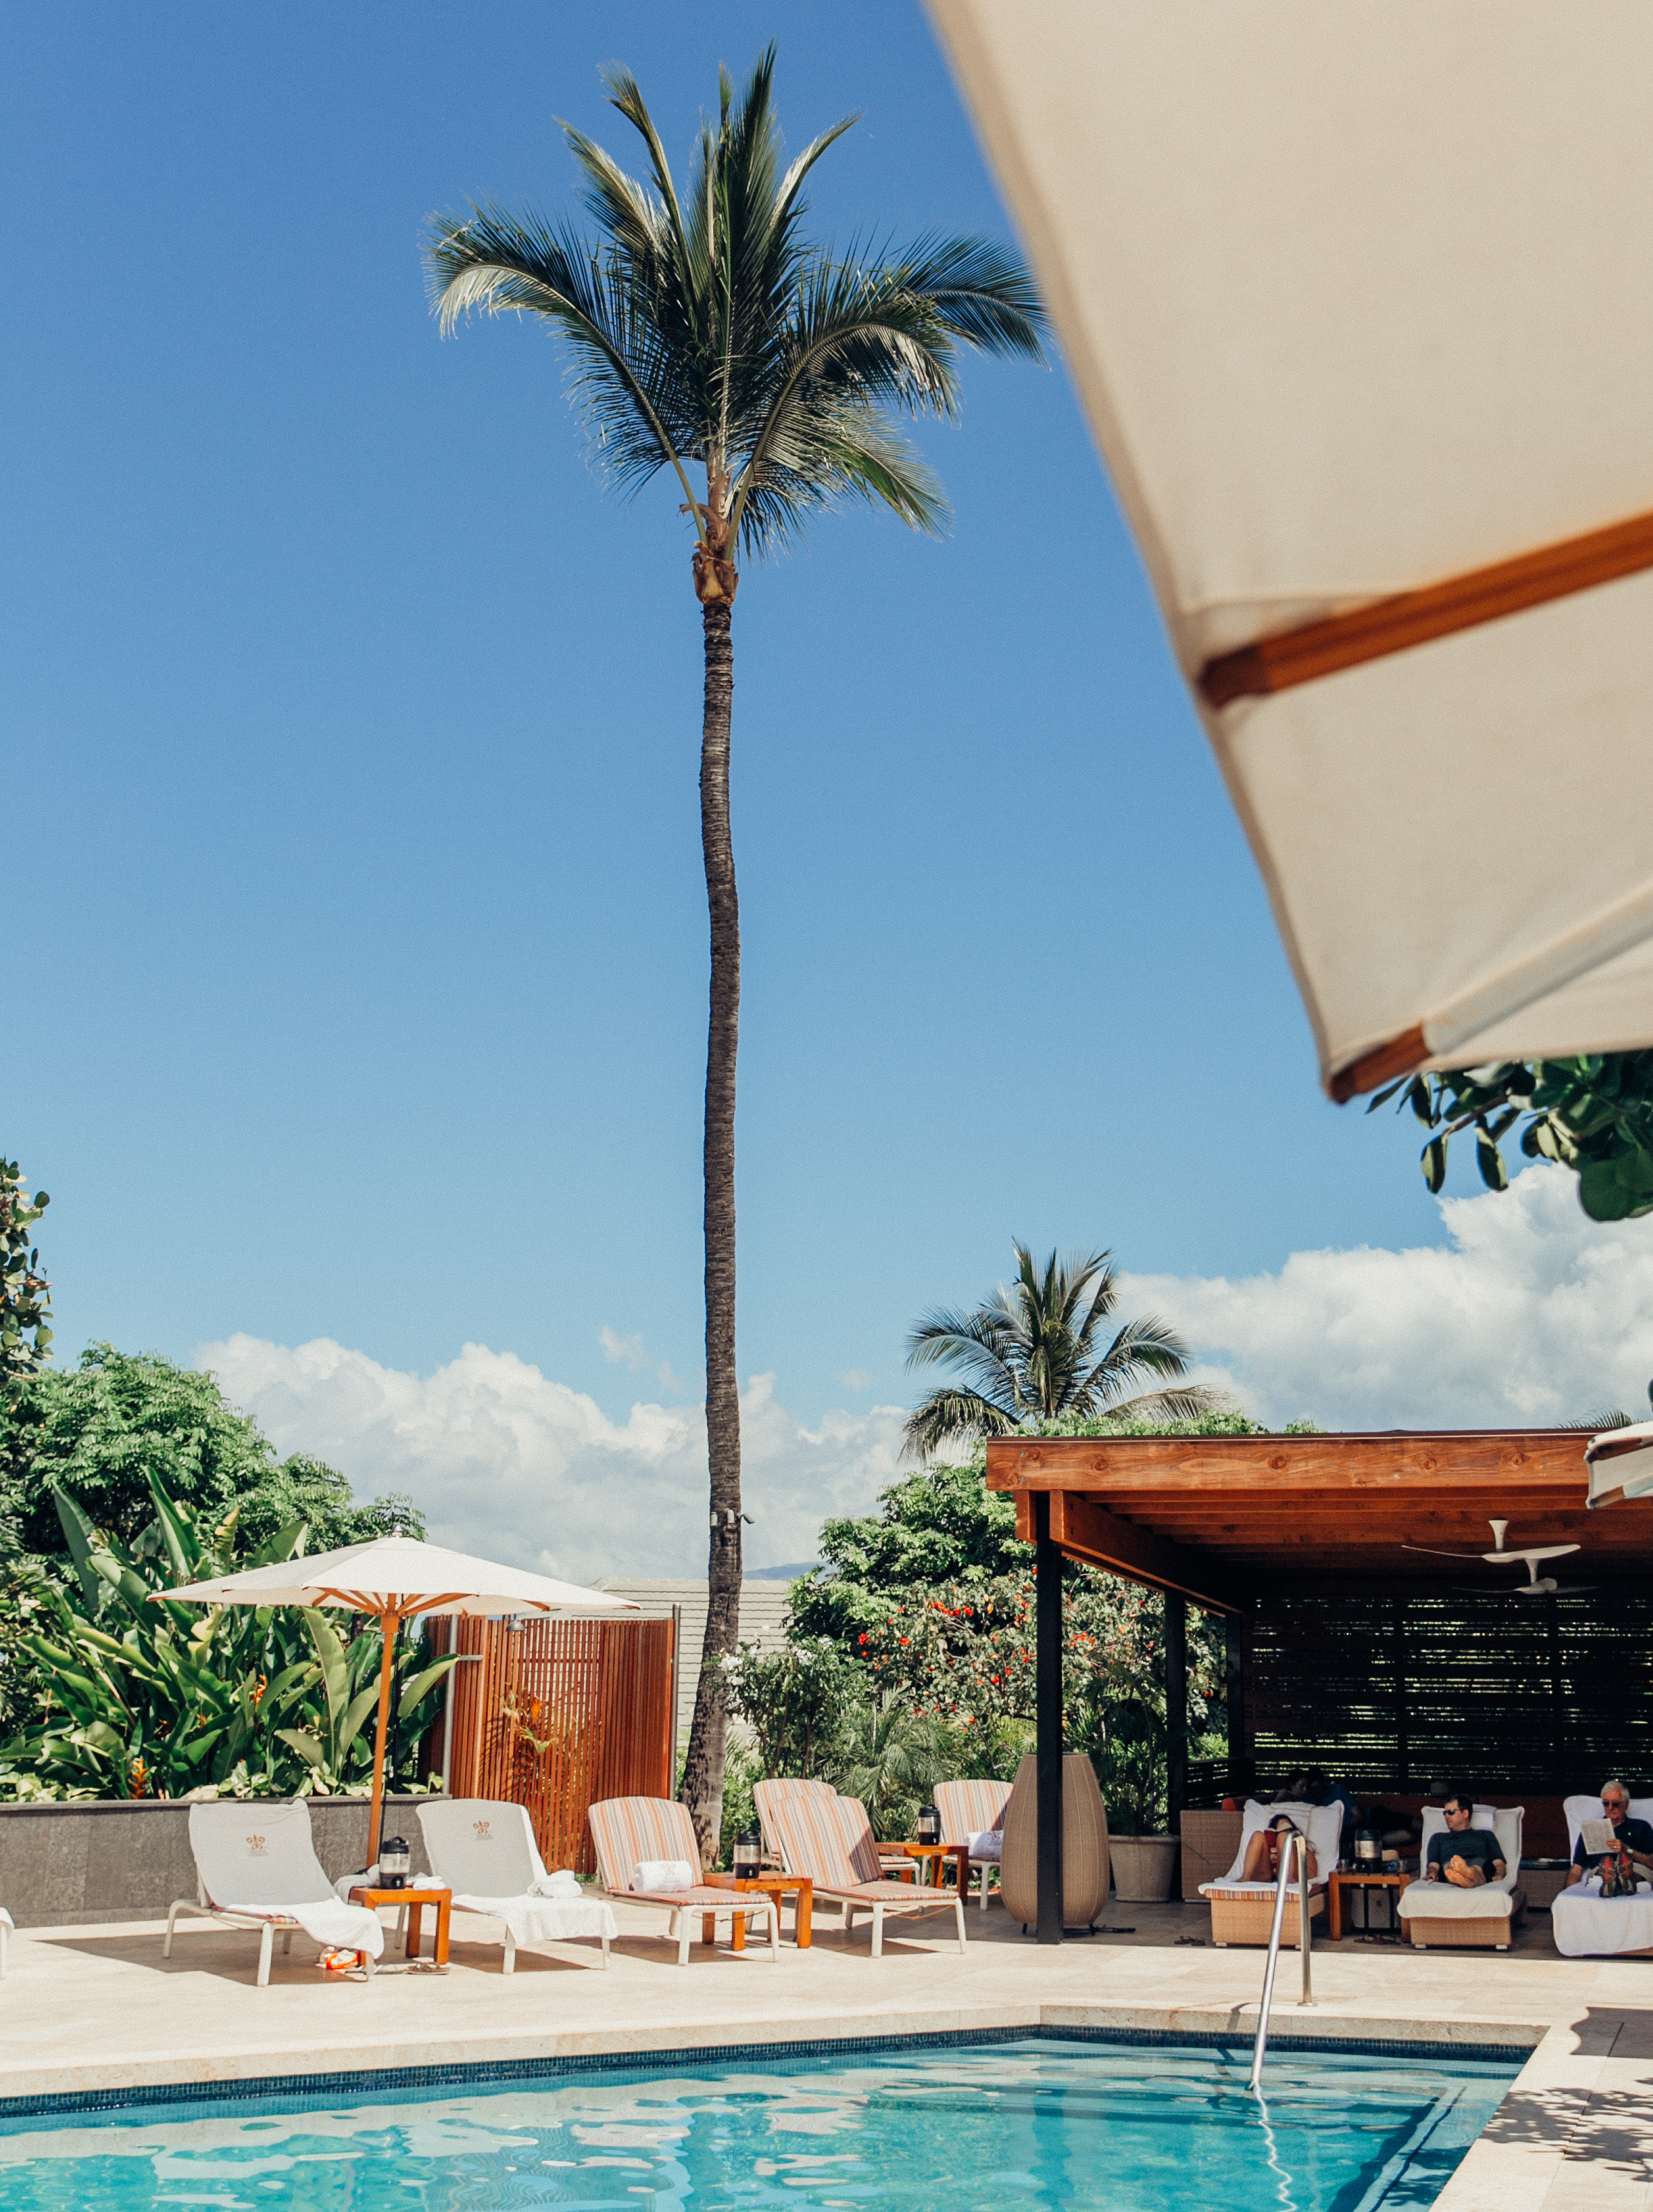 Our Weekend Trip To Maui | Maui Recommendations | Maui Travel Guide | Travel Blogger's Guide To Maui | Best Hotel in Maui | Best Place to Stay in Maui | Romantic Getaway in Maui | Poolside Cabana at Hotel Wailea | Relais & Chateux Property on Maui | Photo by Elana Jadallah via @elanaloo + elanaloo.com